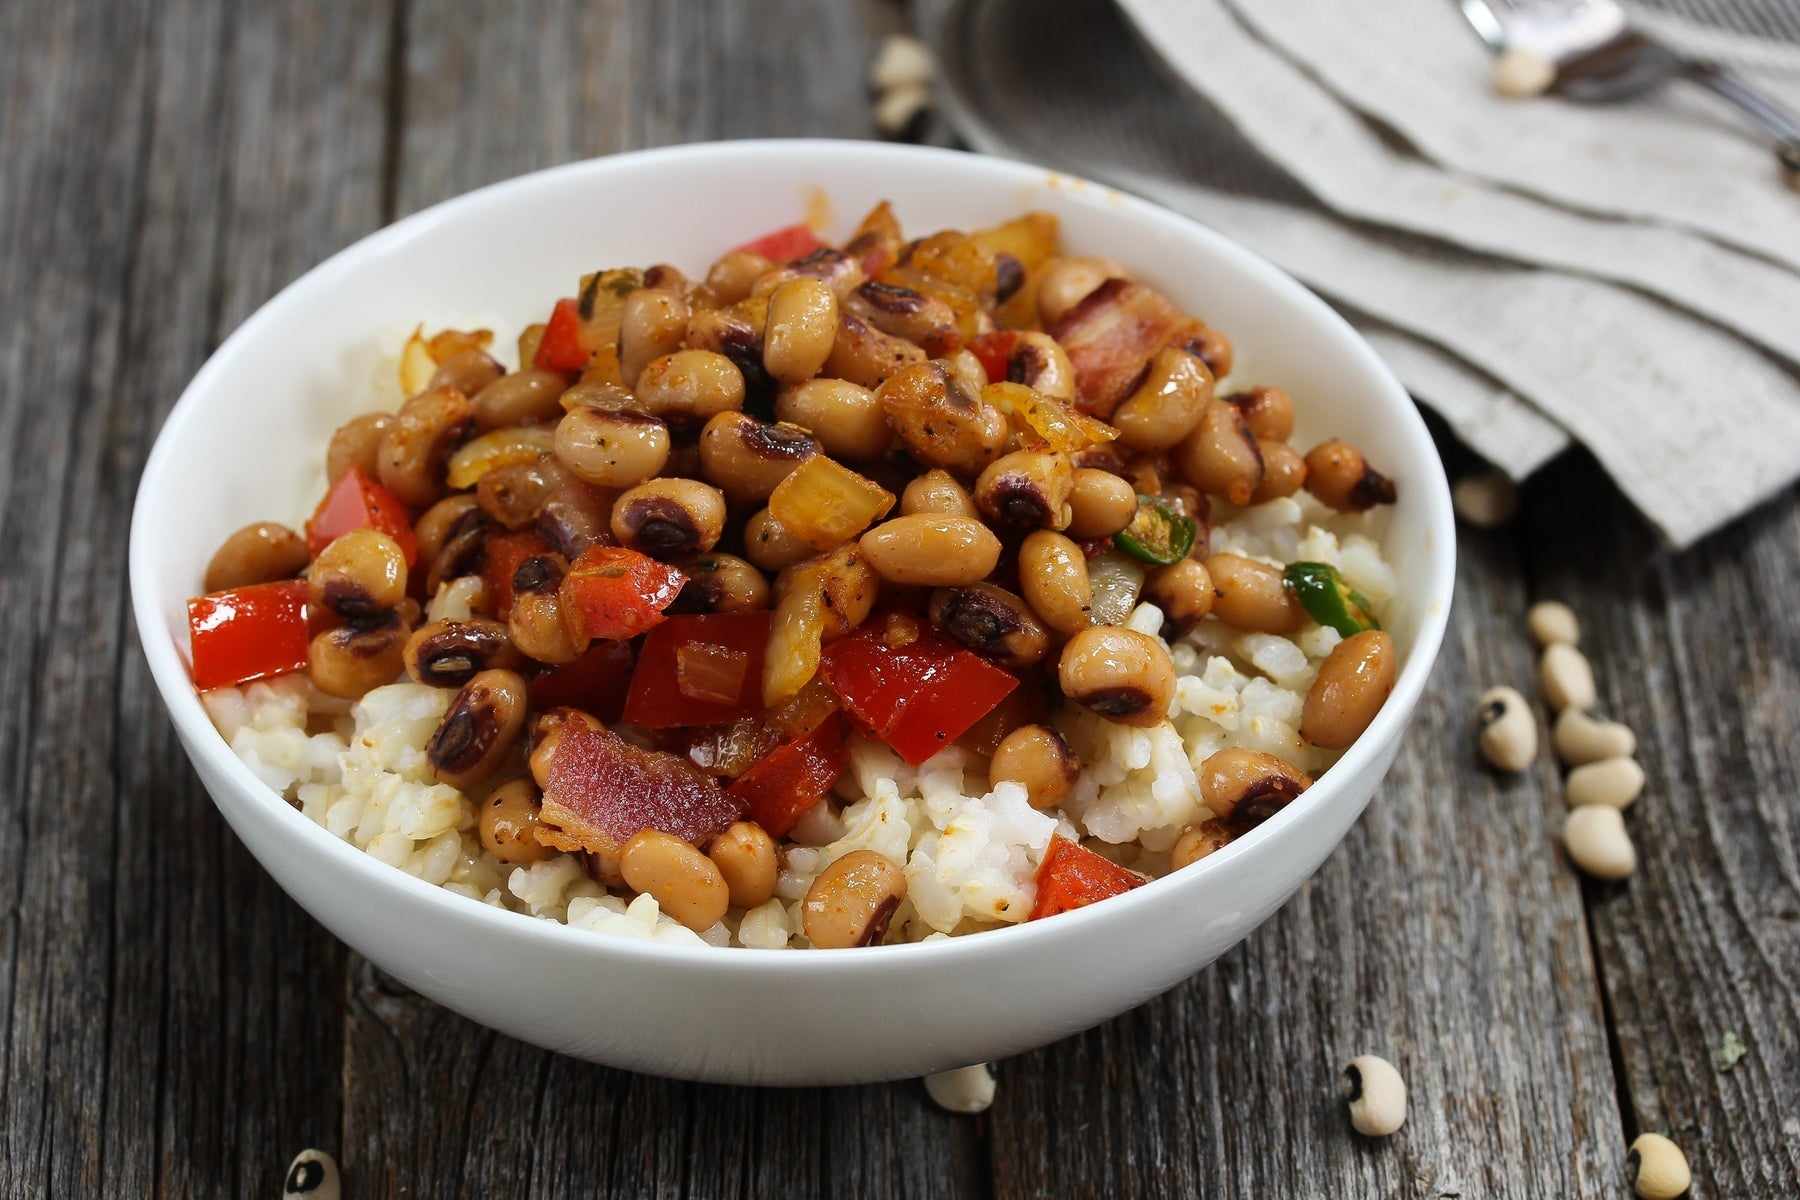 Our Hoppin' John